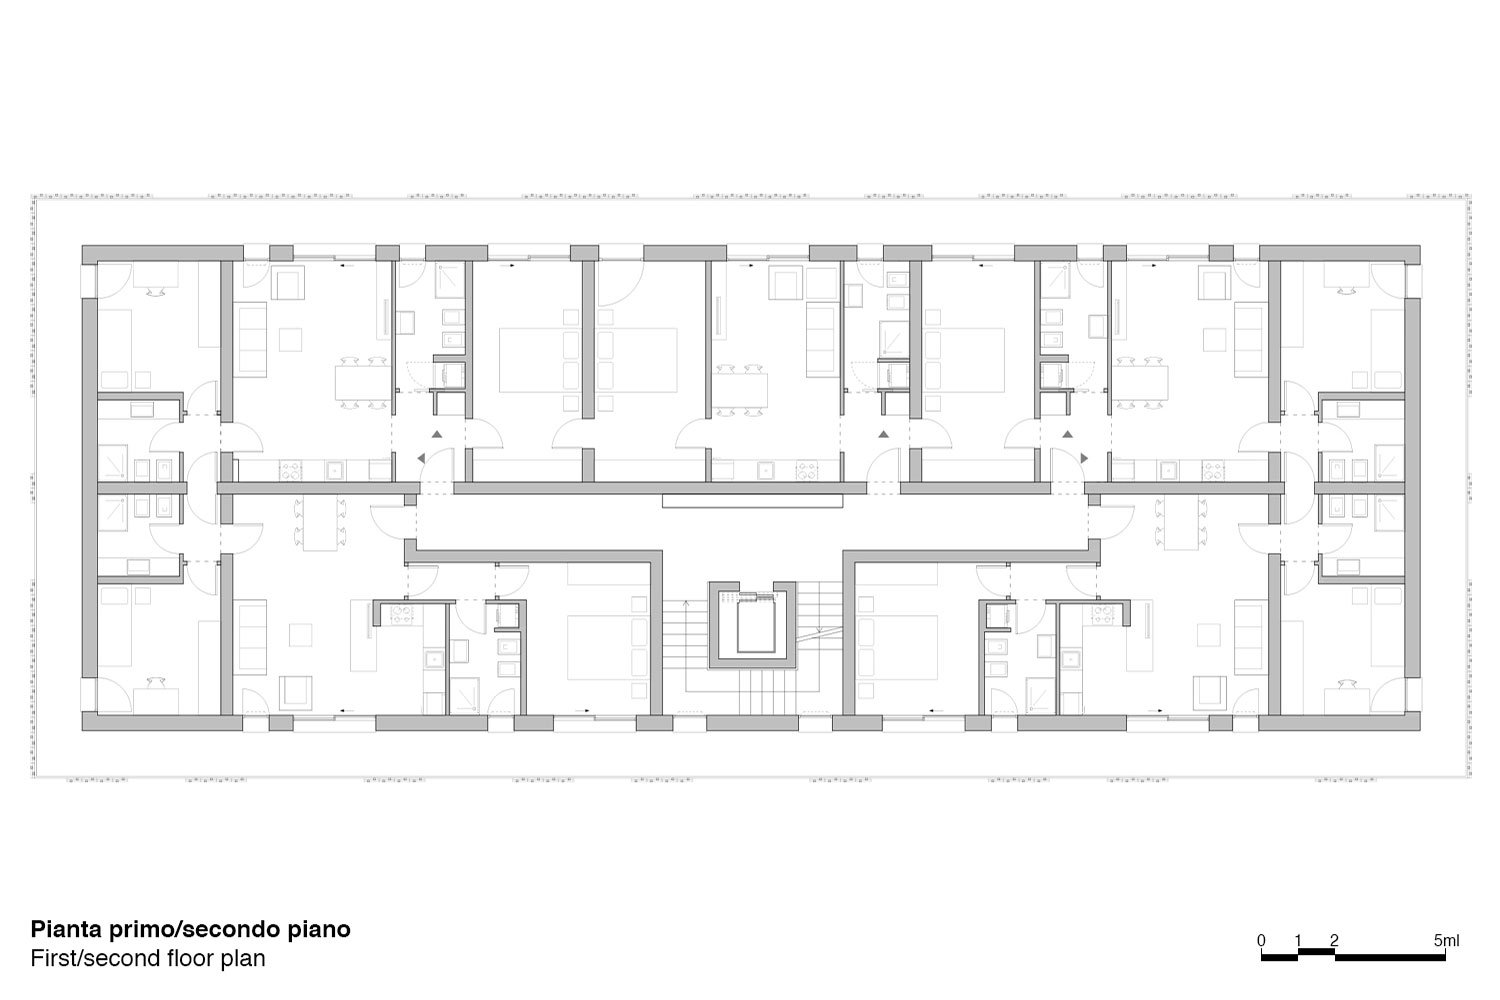 First/second floor plan Antonio Iascone & Partners}